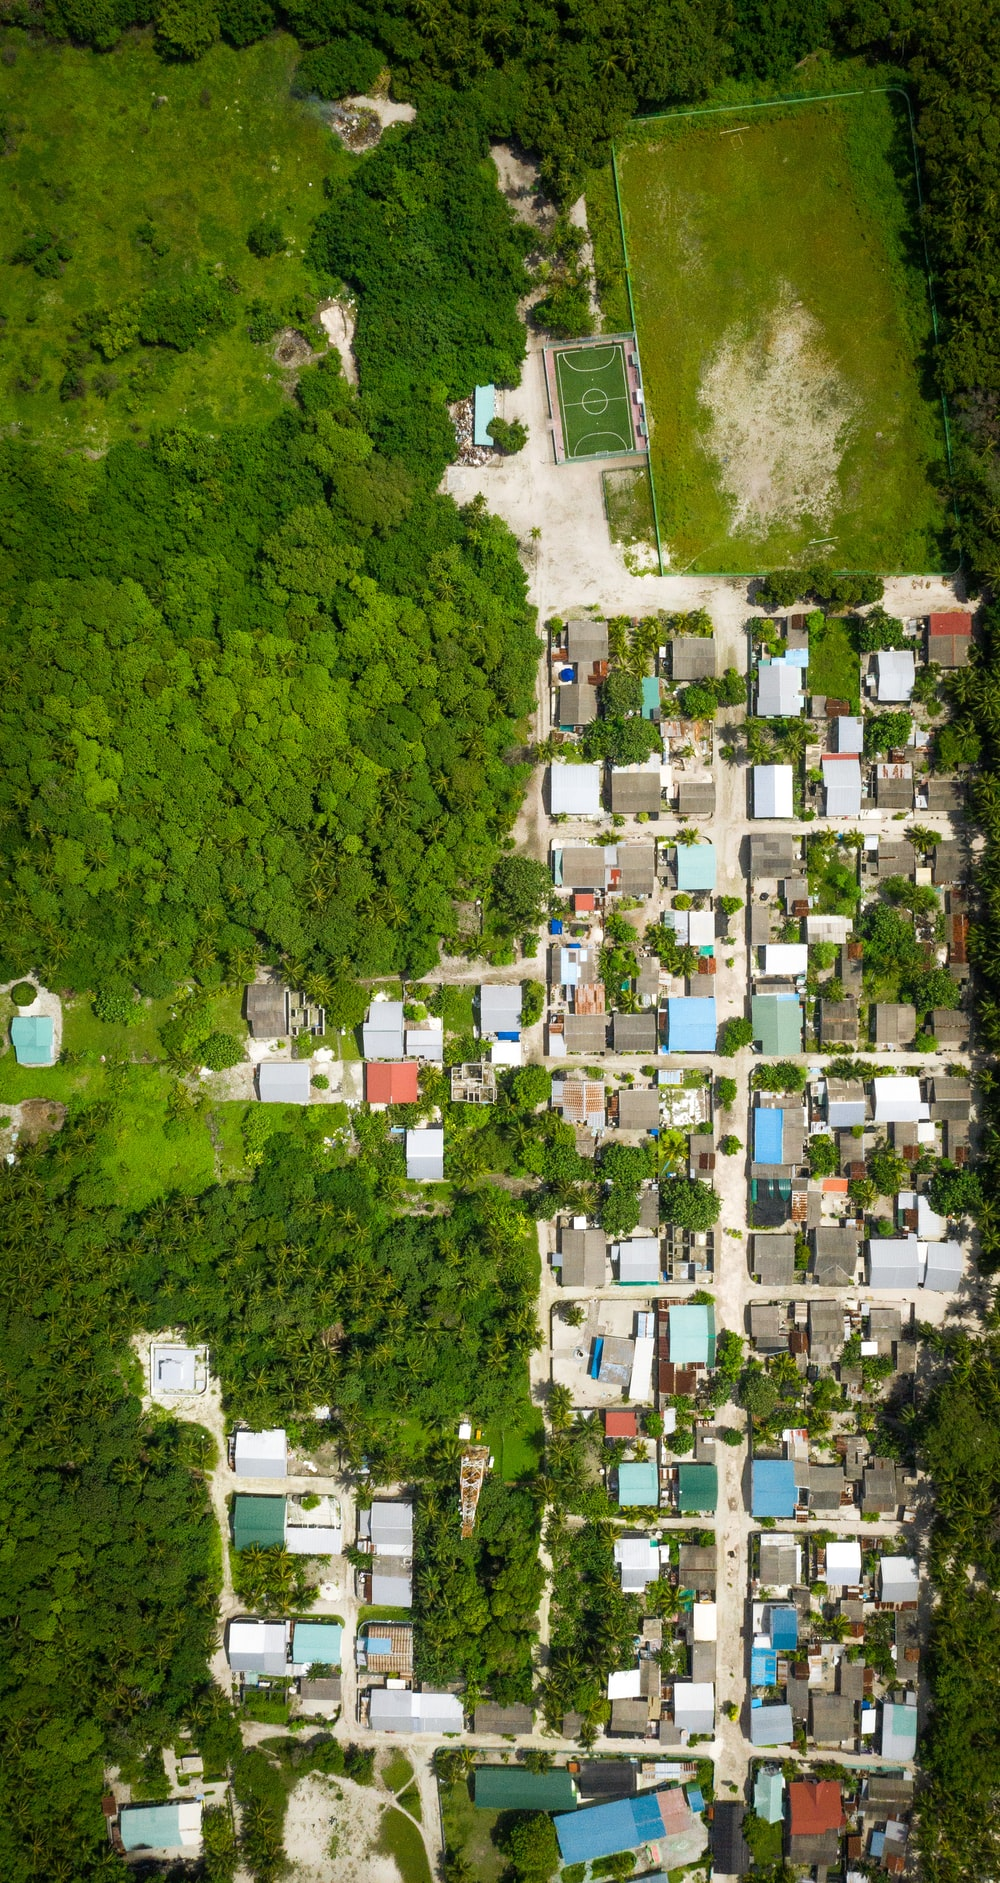 aerial view of houses and trees